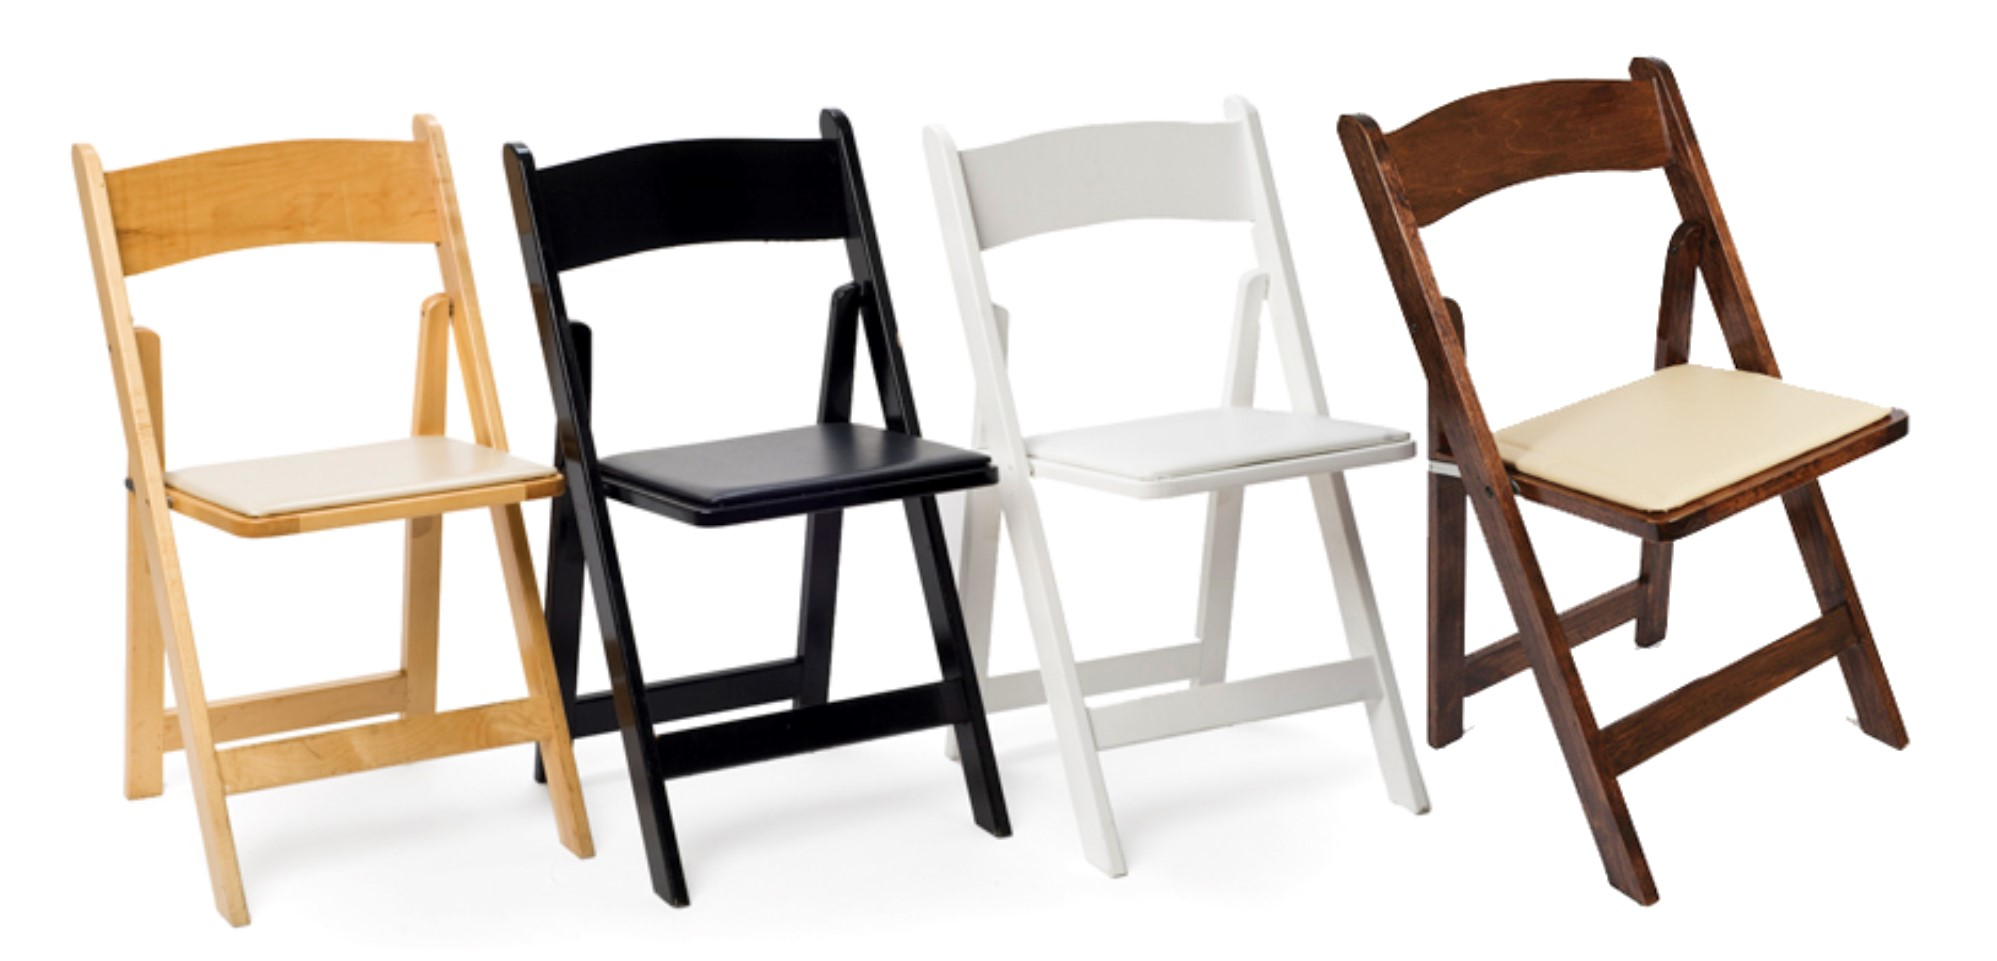 Party Chairs For Rent Chairs Padded Folding Chairs Av Party Rental